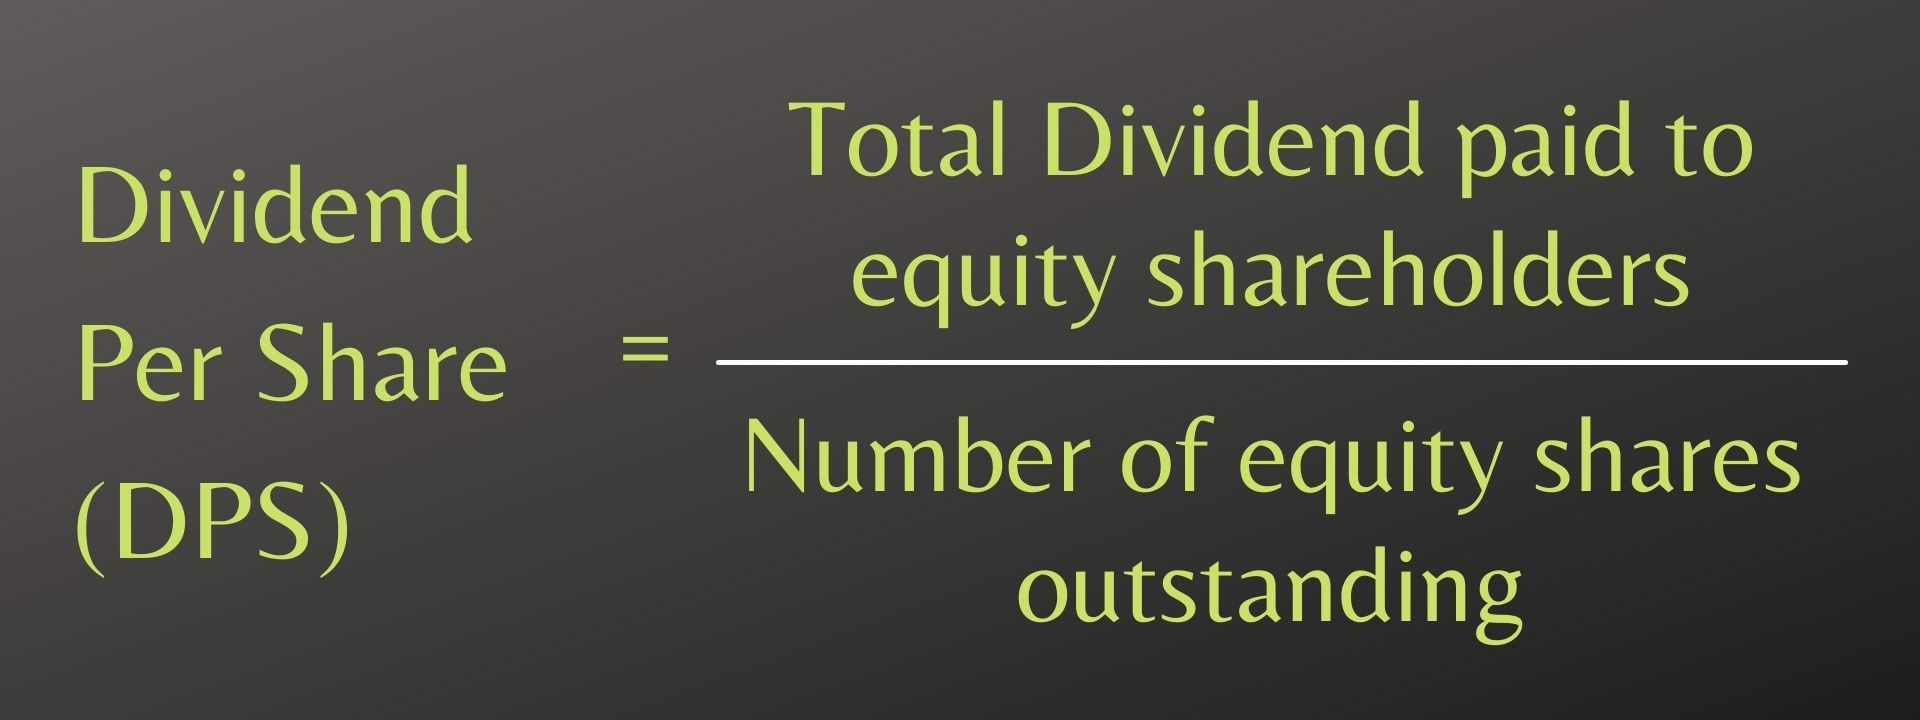 Dividend Per Share (DPS)